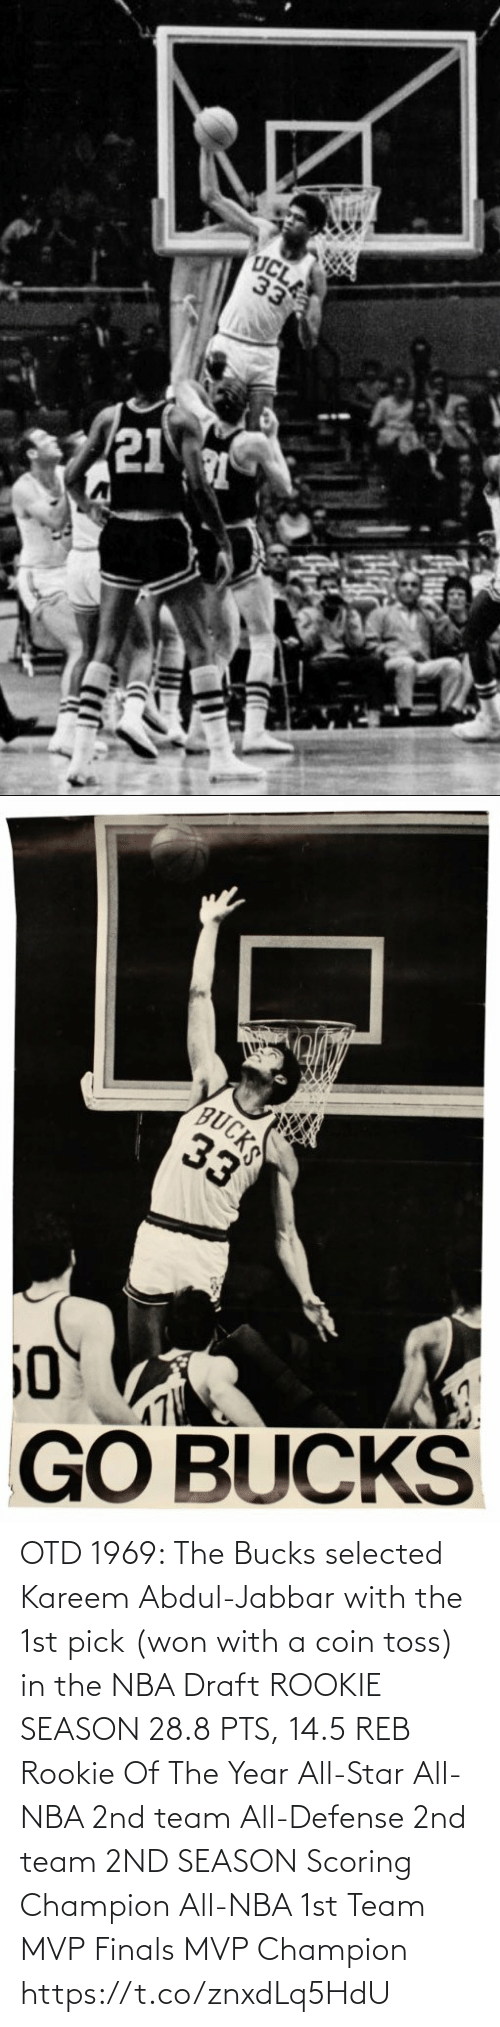 draft: OTD 1969: The Bucks selected Kareem Abdul-Jabbar with the 1st pick (won with a coin toss) in the NBA Draft   ROOKIE SEASON 28.8 PTS, 14.5 REB Rookie Of The Year All-Star All-NBA 2nd team All-Defense 2nd team  2ND SEASON Scoring Champion All-NBA 1st Team MVP Finals MVP Champion https://t.co/znxdLq5HdU